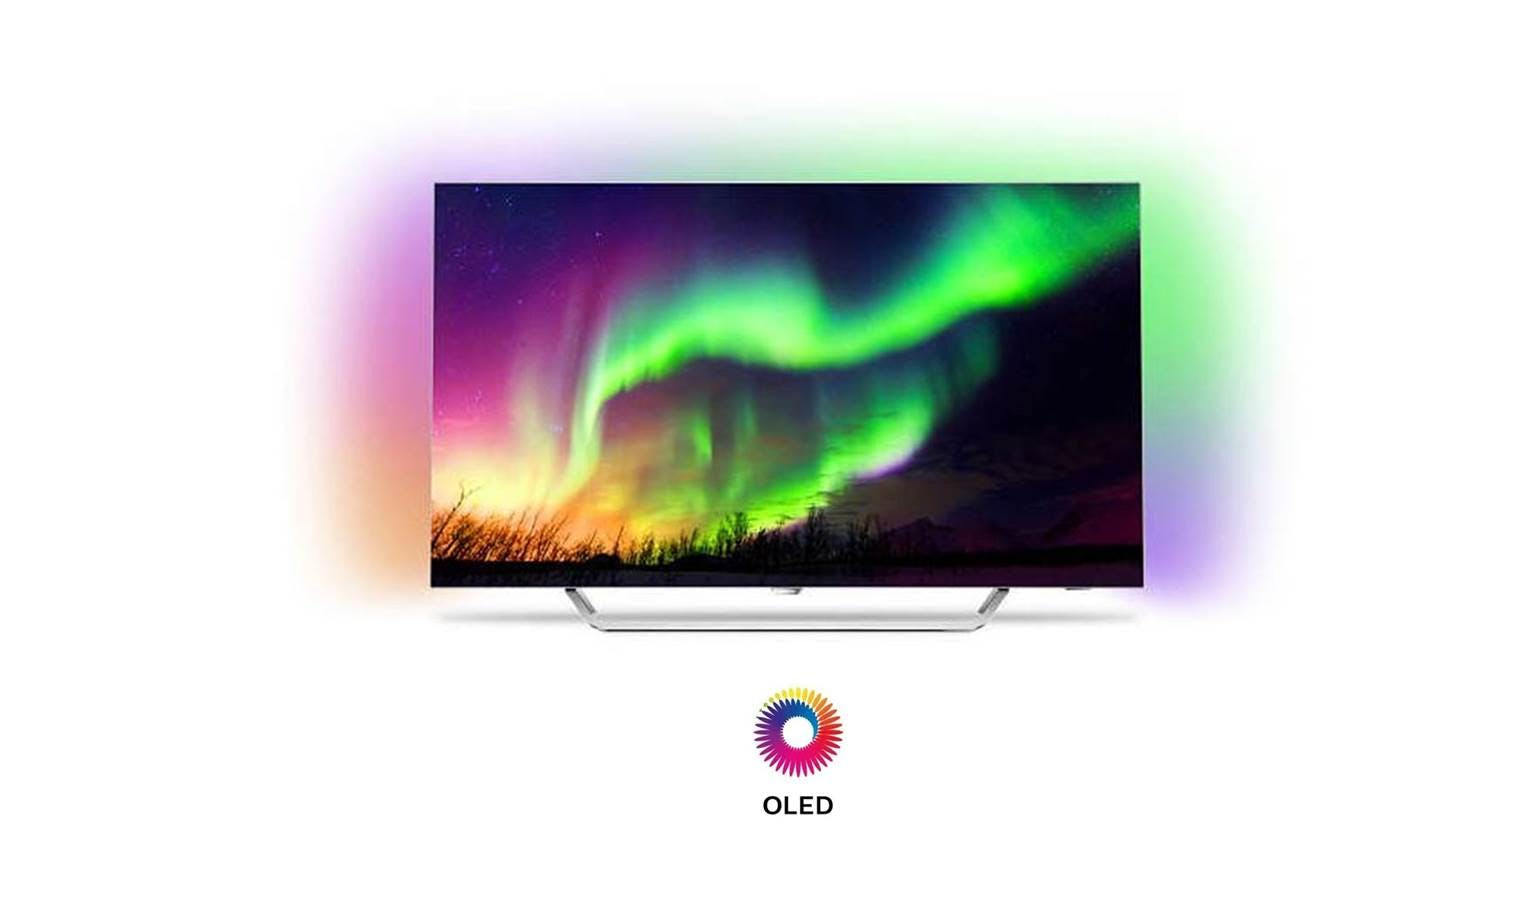 philips 55oled873 55 razor slim 4k oled smart tv harvey norman singapore. Black Bedroom Furniture Sets. Home Design Ideas